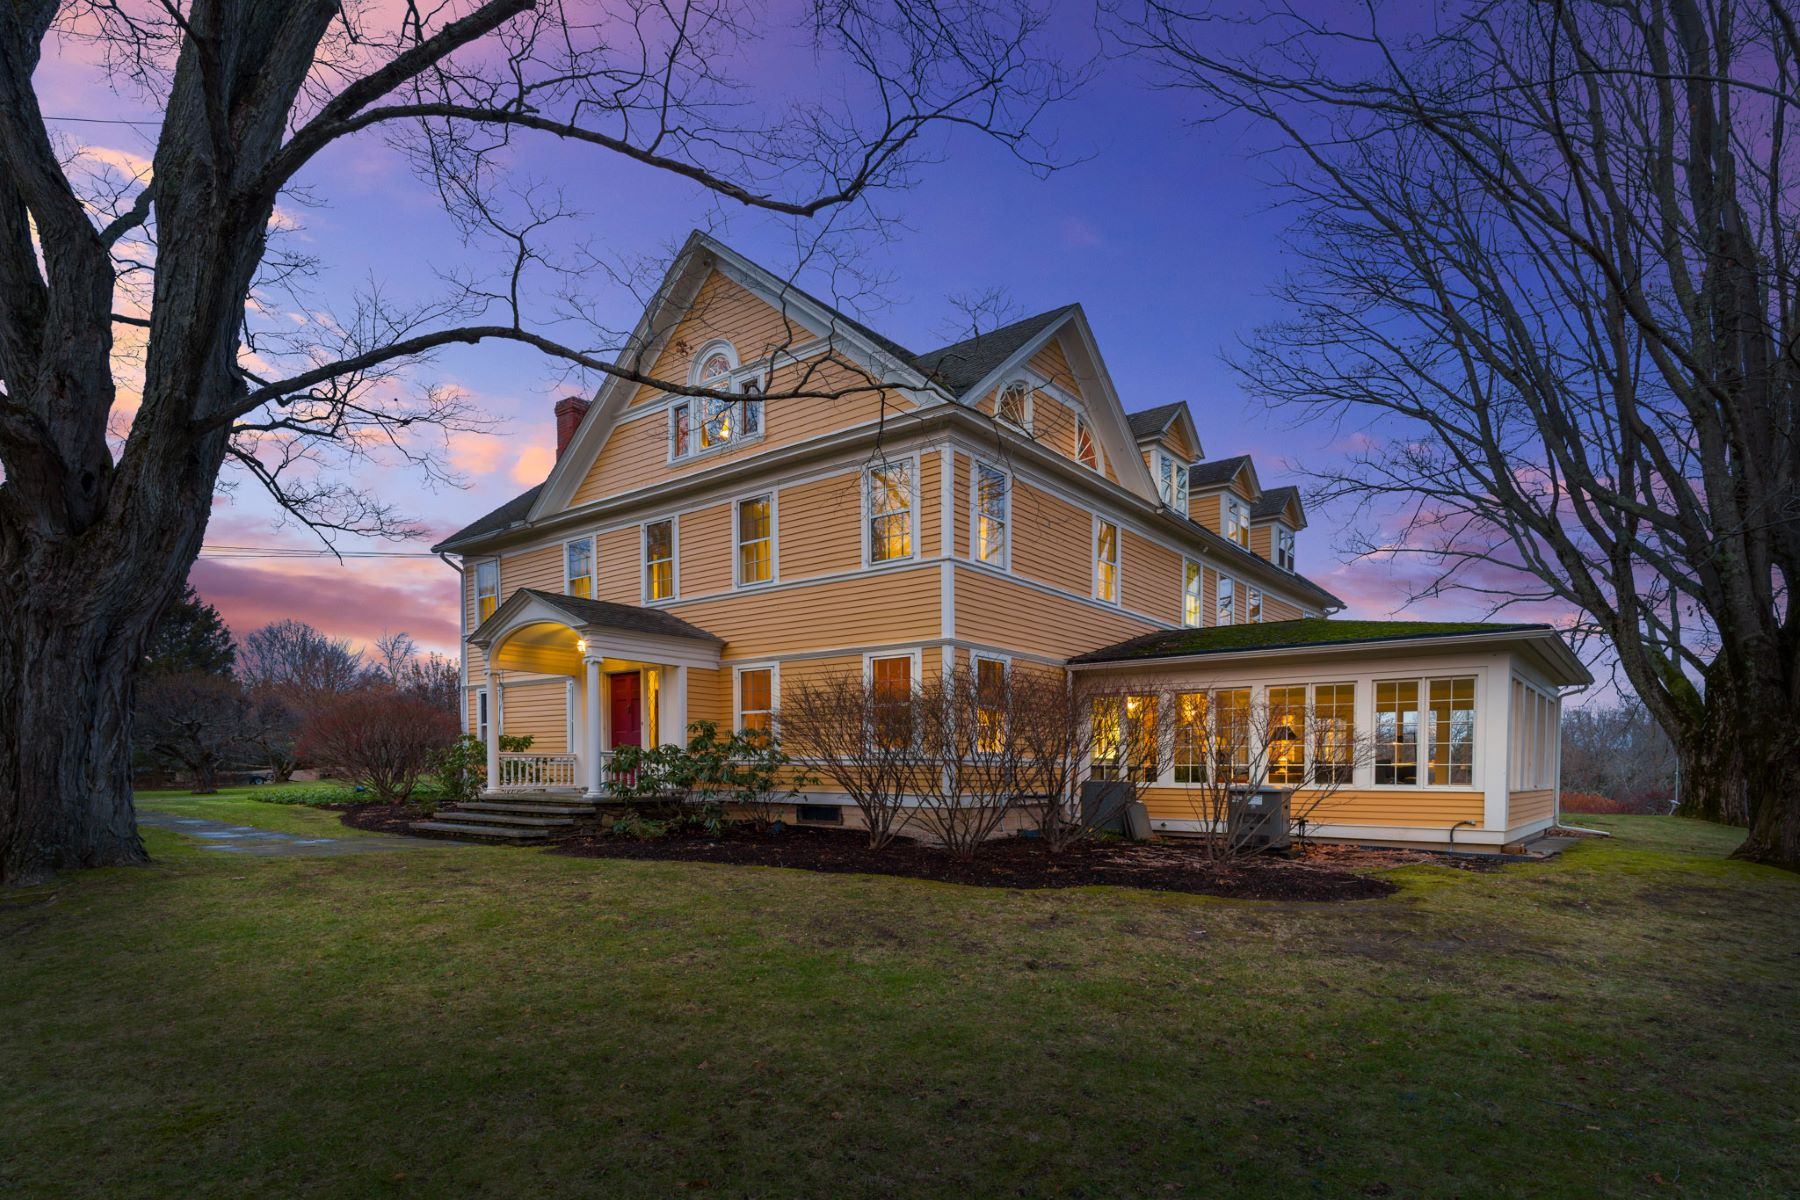 Single Family Homes for Sale at WARM AND GRACIOUS COUNTRY HOME 547 Under Mountain Road, Salisbury, Connecticut 06068 United States